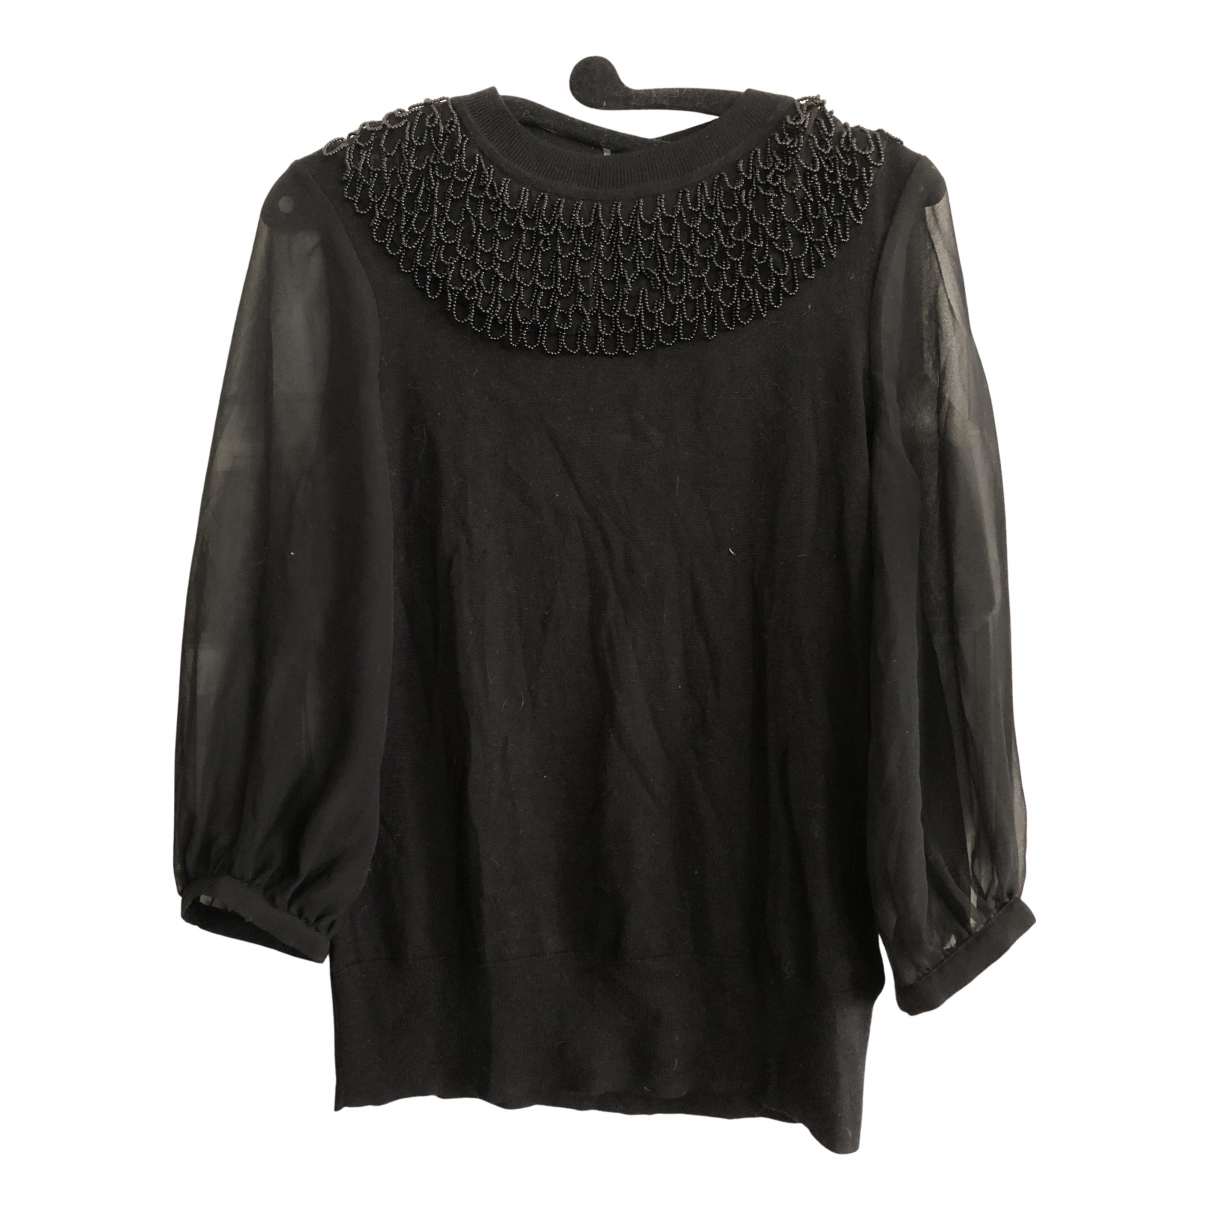 Ted Baker \N Black Cotton Knitwear for Women S International